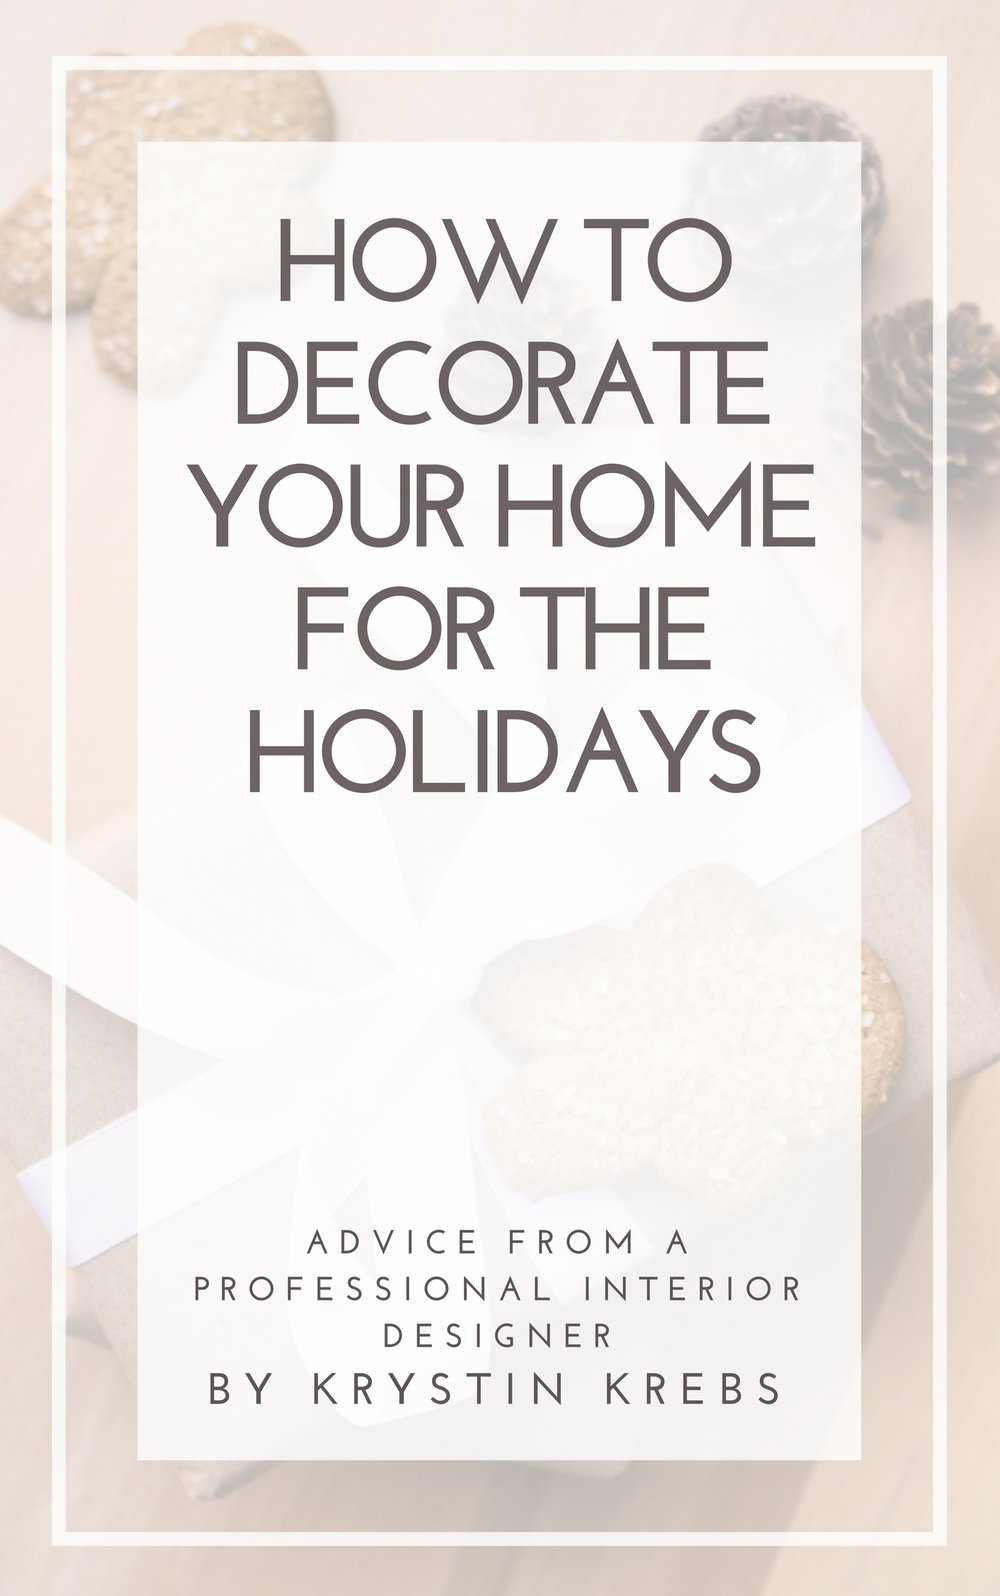 How to Decorate Your Home for the Holidays.jpg